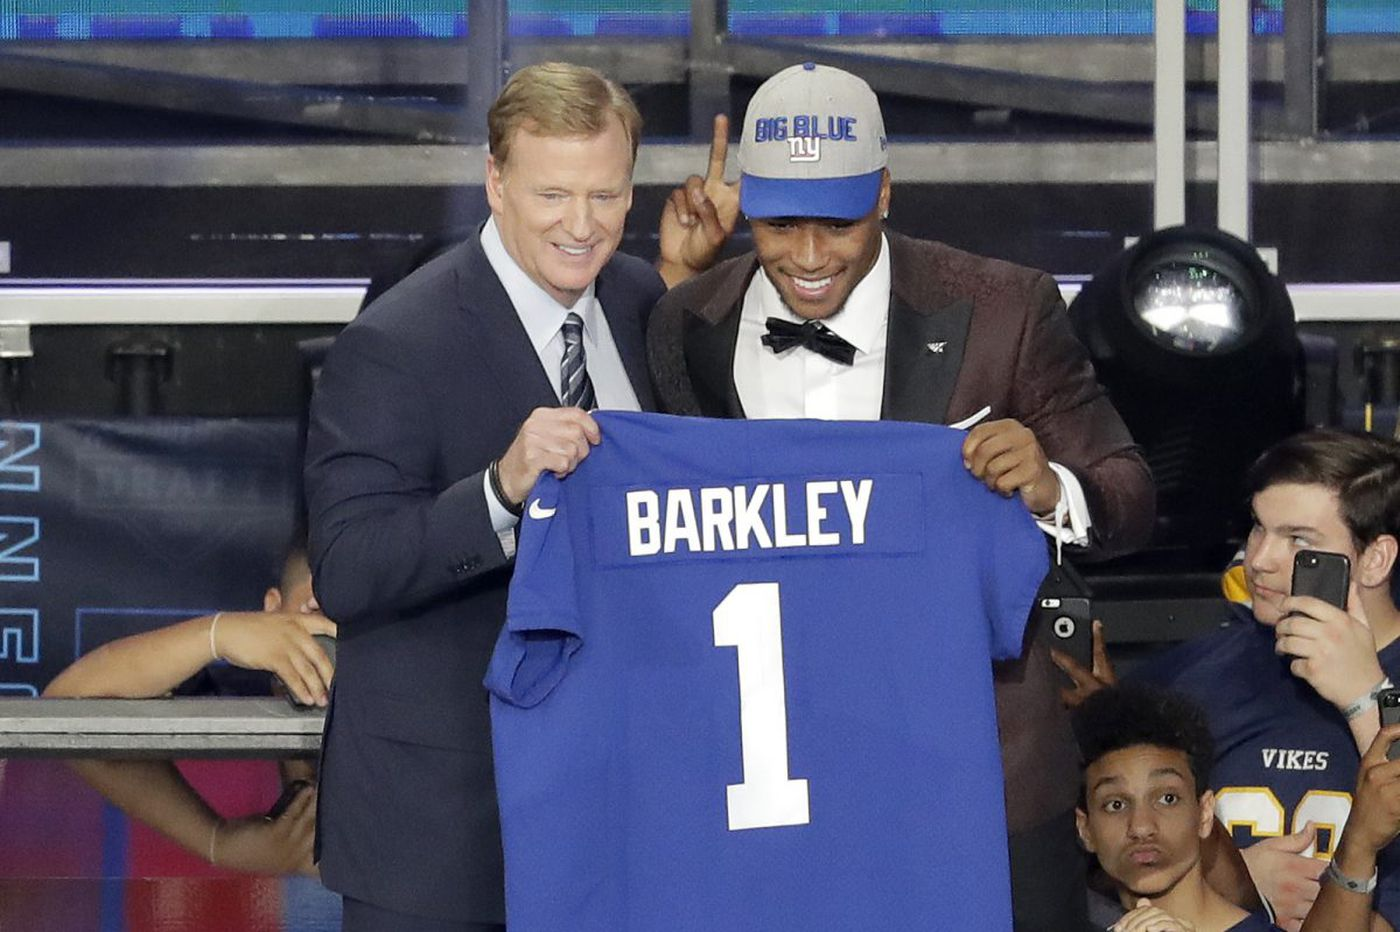 Saquon Barkley picked No. 2 overall by Giants; Browns take Baker Mayfield at No. 1